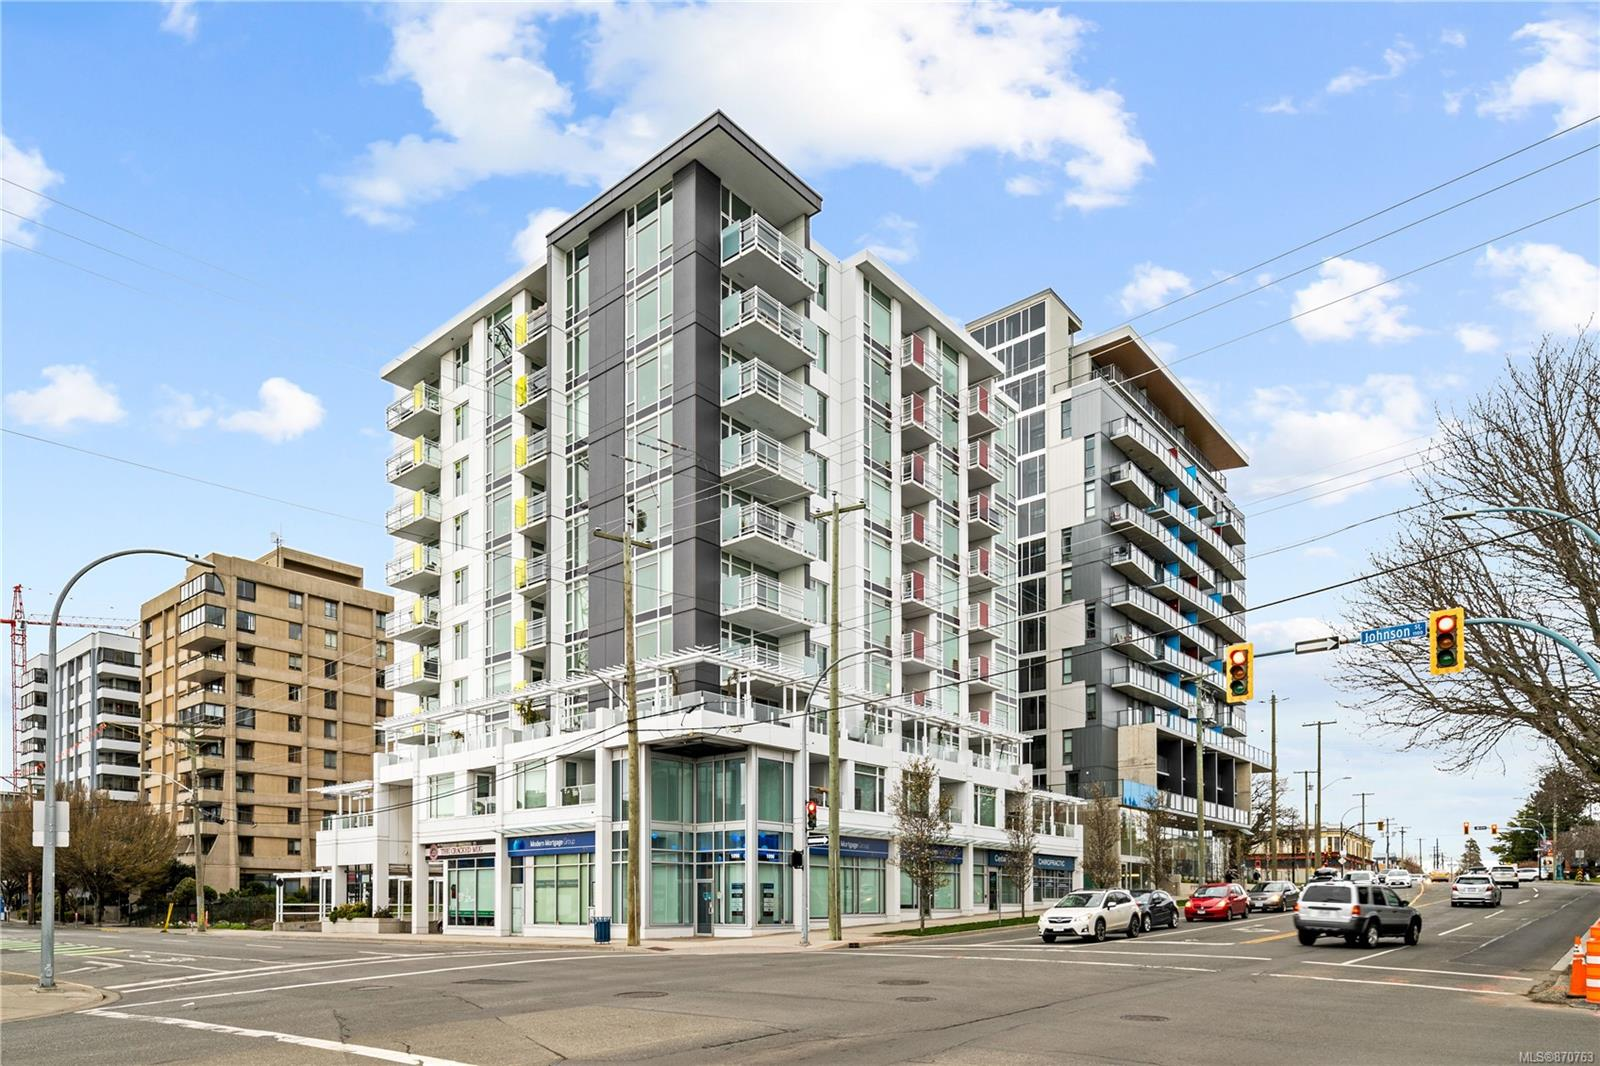 206 - 1090 Johnson Street, Downtown, Victoria